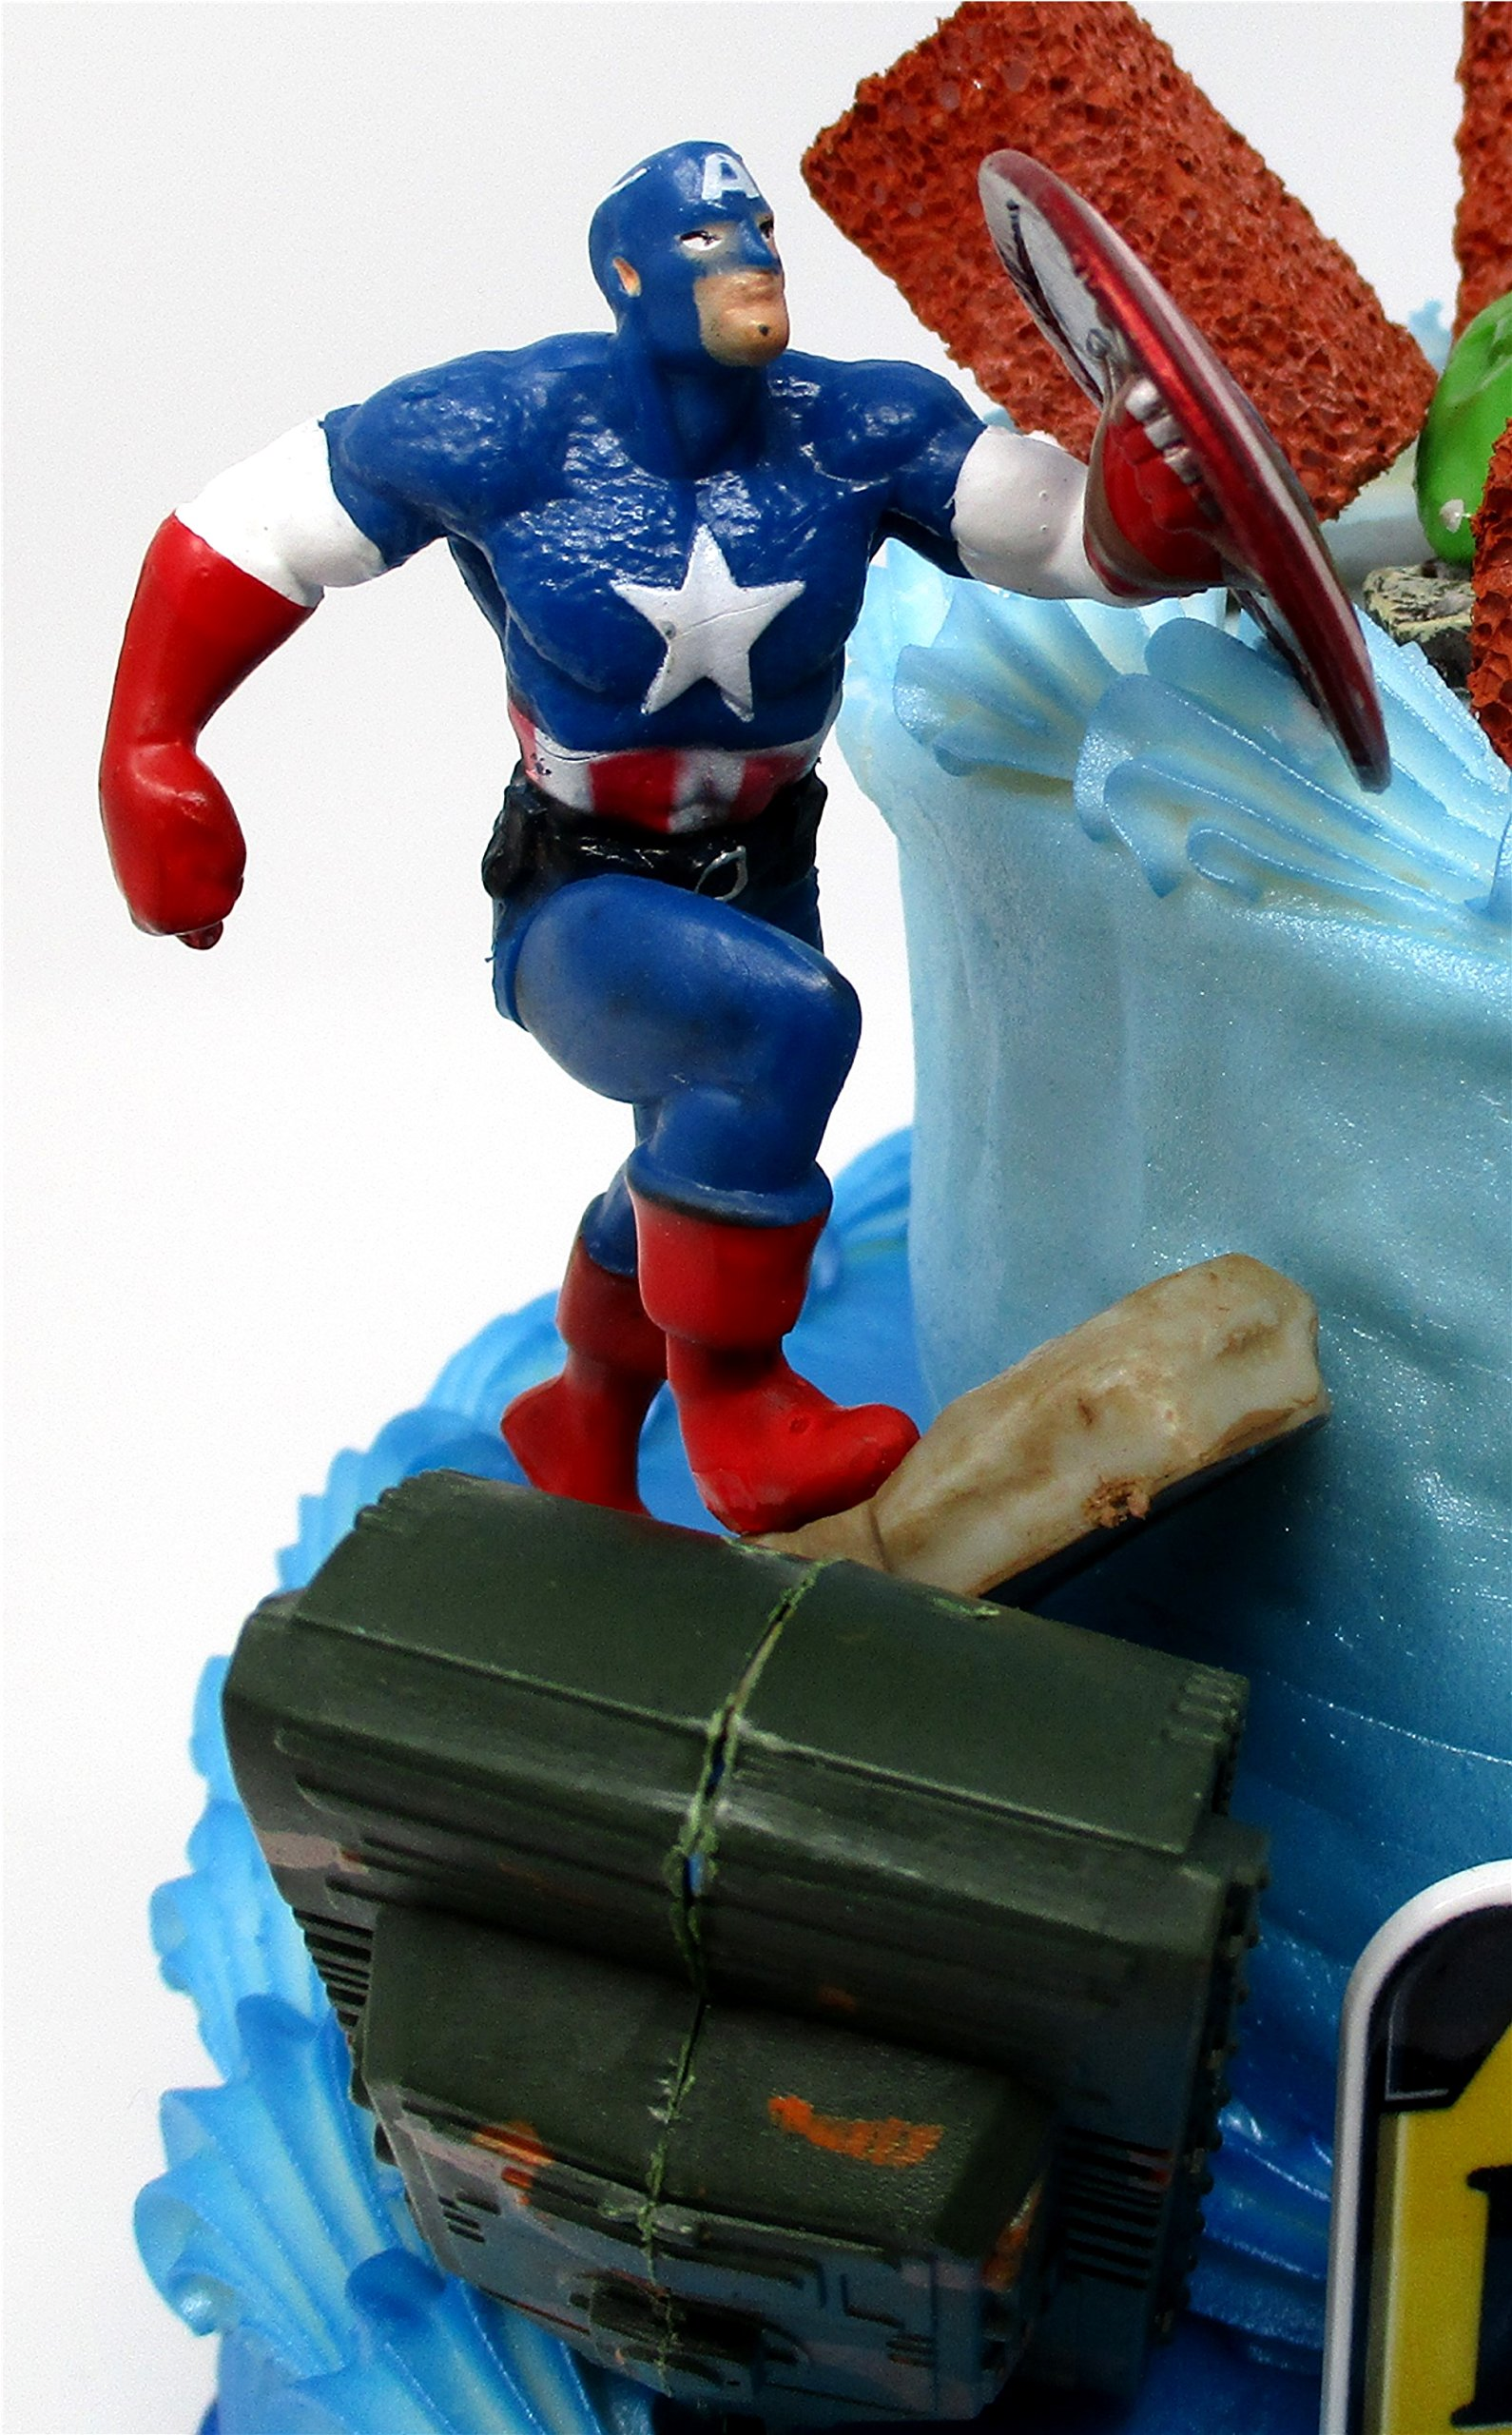 AVENGERS Deluxe Super Hero Birthday Cake Topper Set Featuring Avenger Figures and Decorative Themed Accessories by Cake Toppers (Image #6)